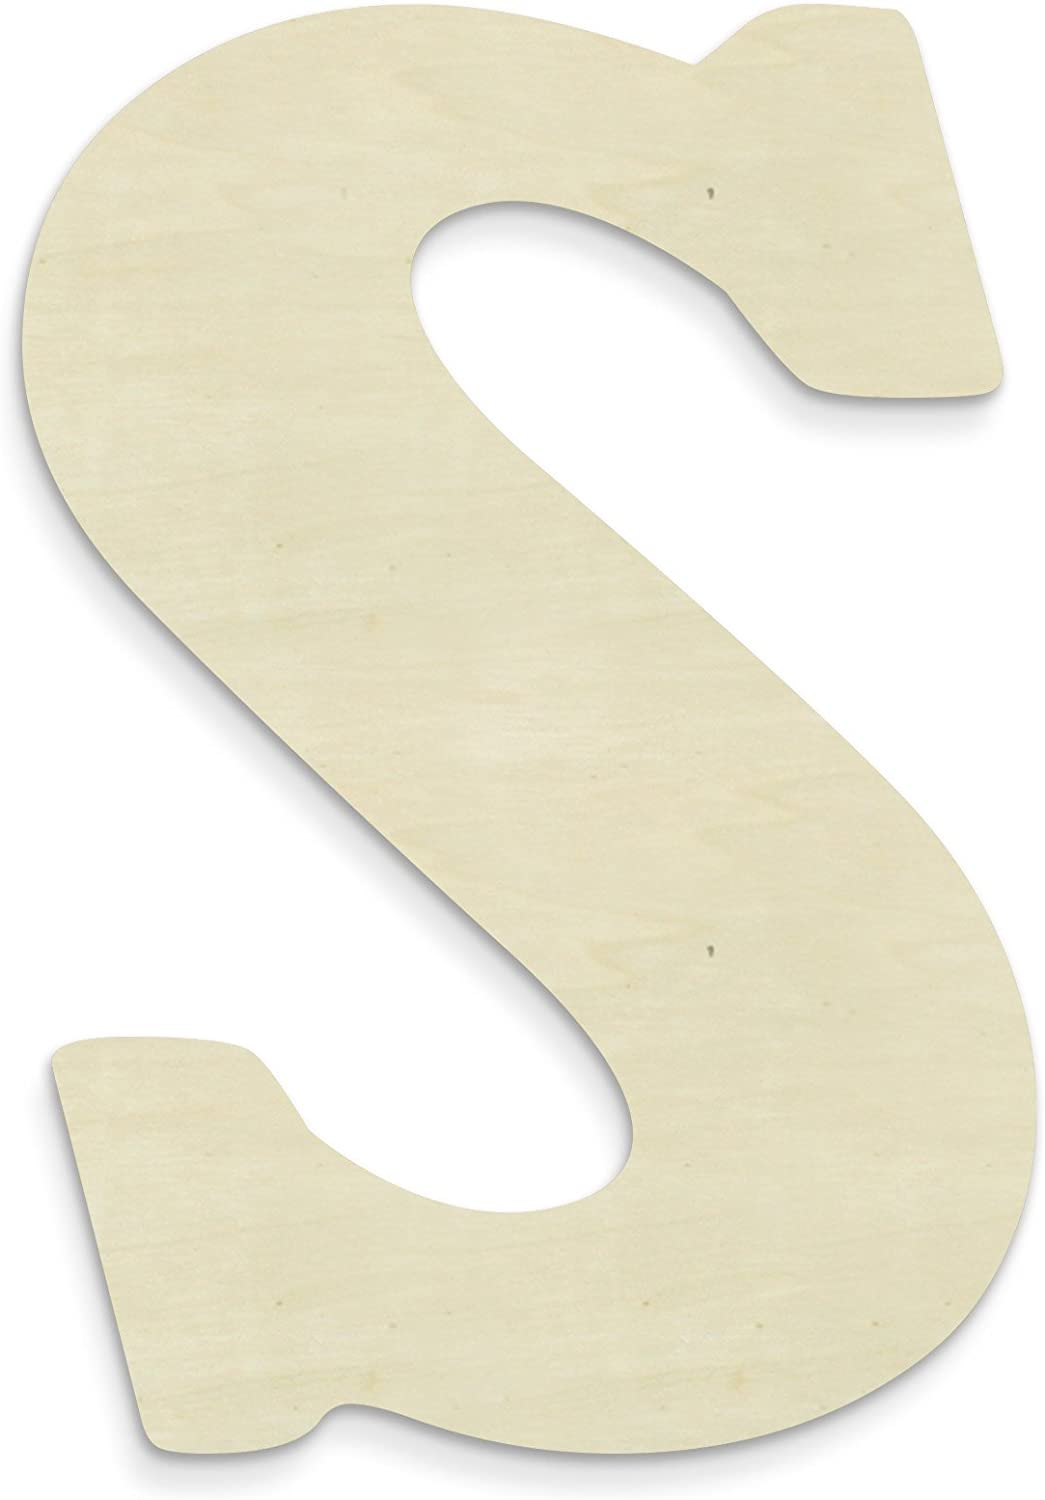 UNFINISHEDWOODCO Unfinished Wood Letter, 15-Inch, Monogrammed S, Large